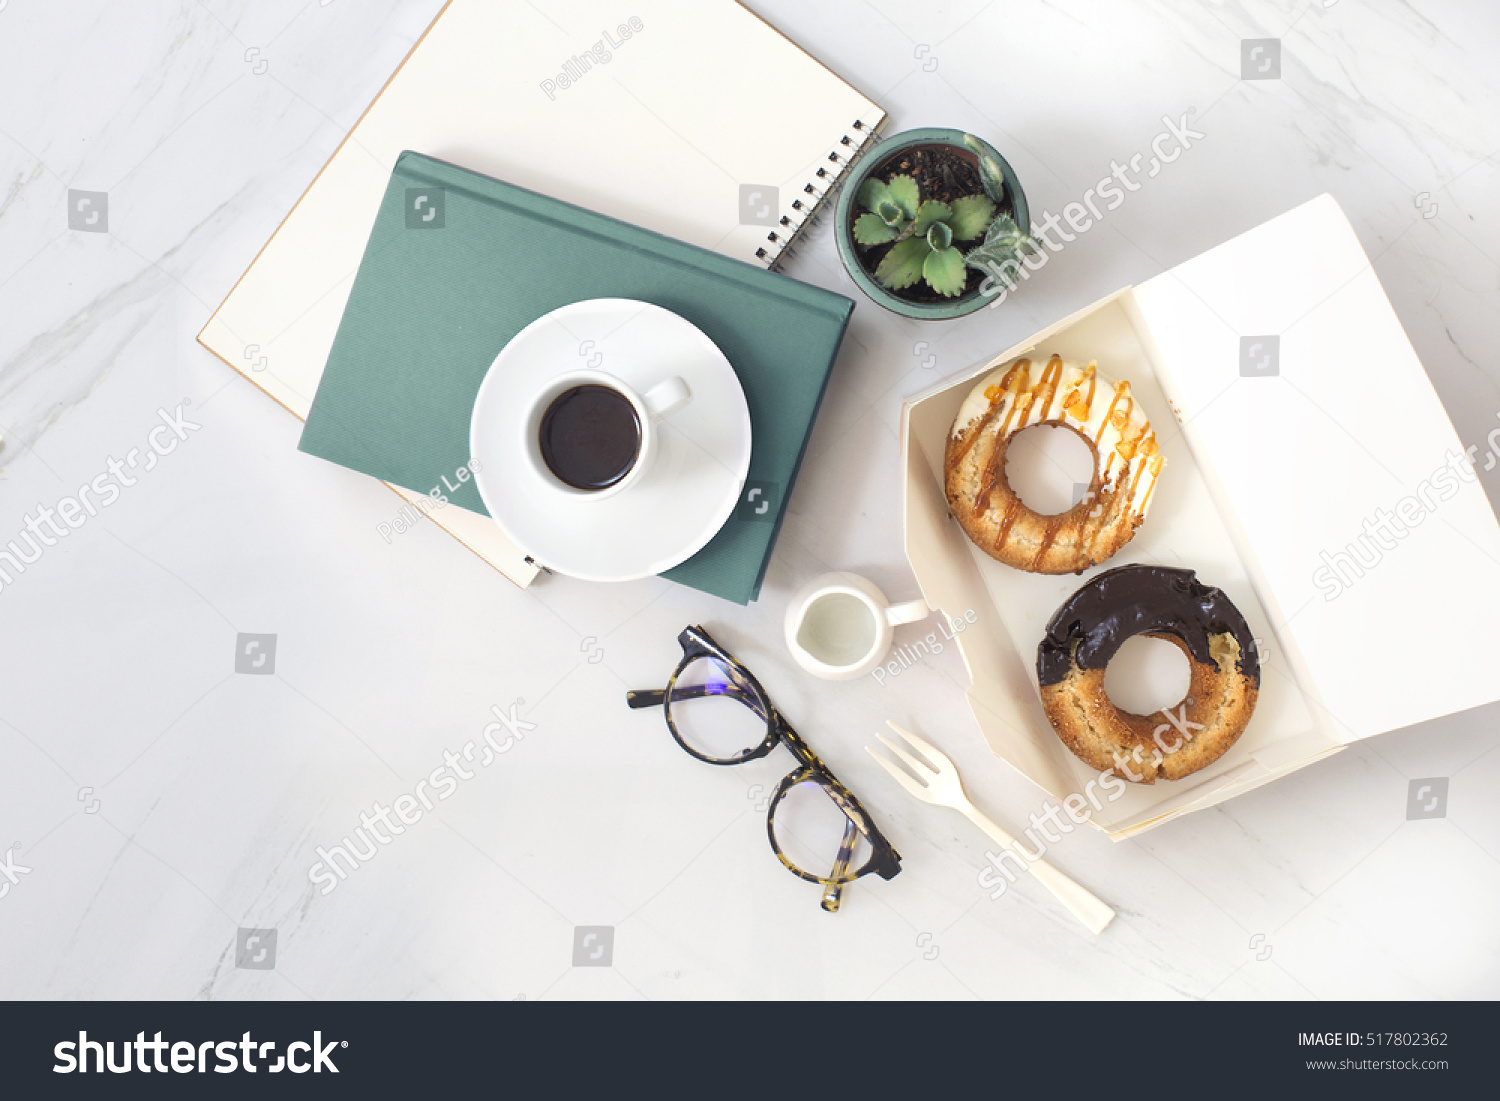 Overhead view of chocolate cake donuts with salted caramel glaze with a cup of espresso on marble table top Afternoon me time book reading with dessert and coffee Text space images